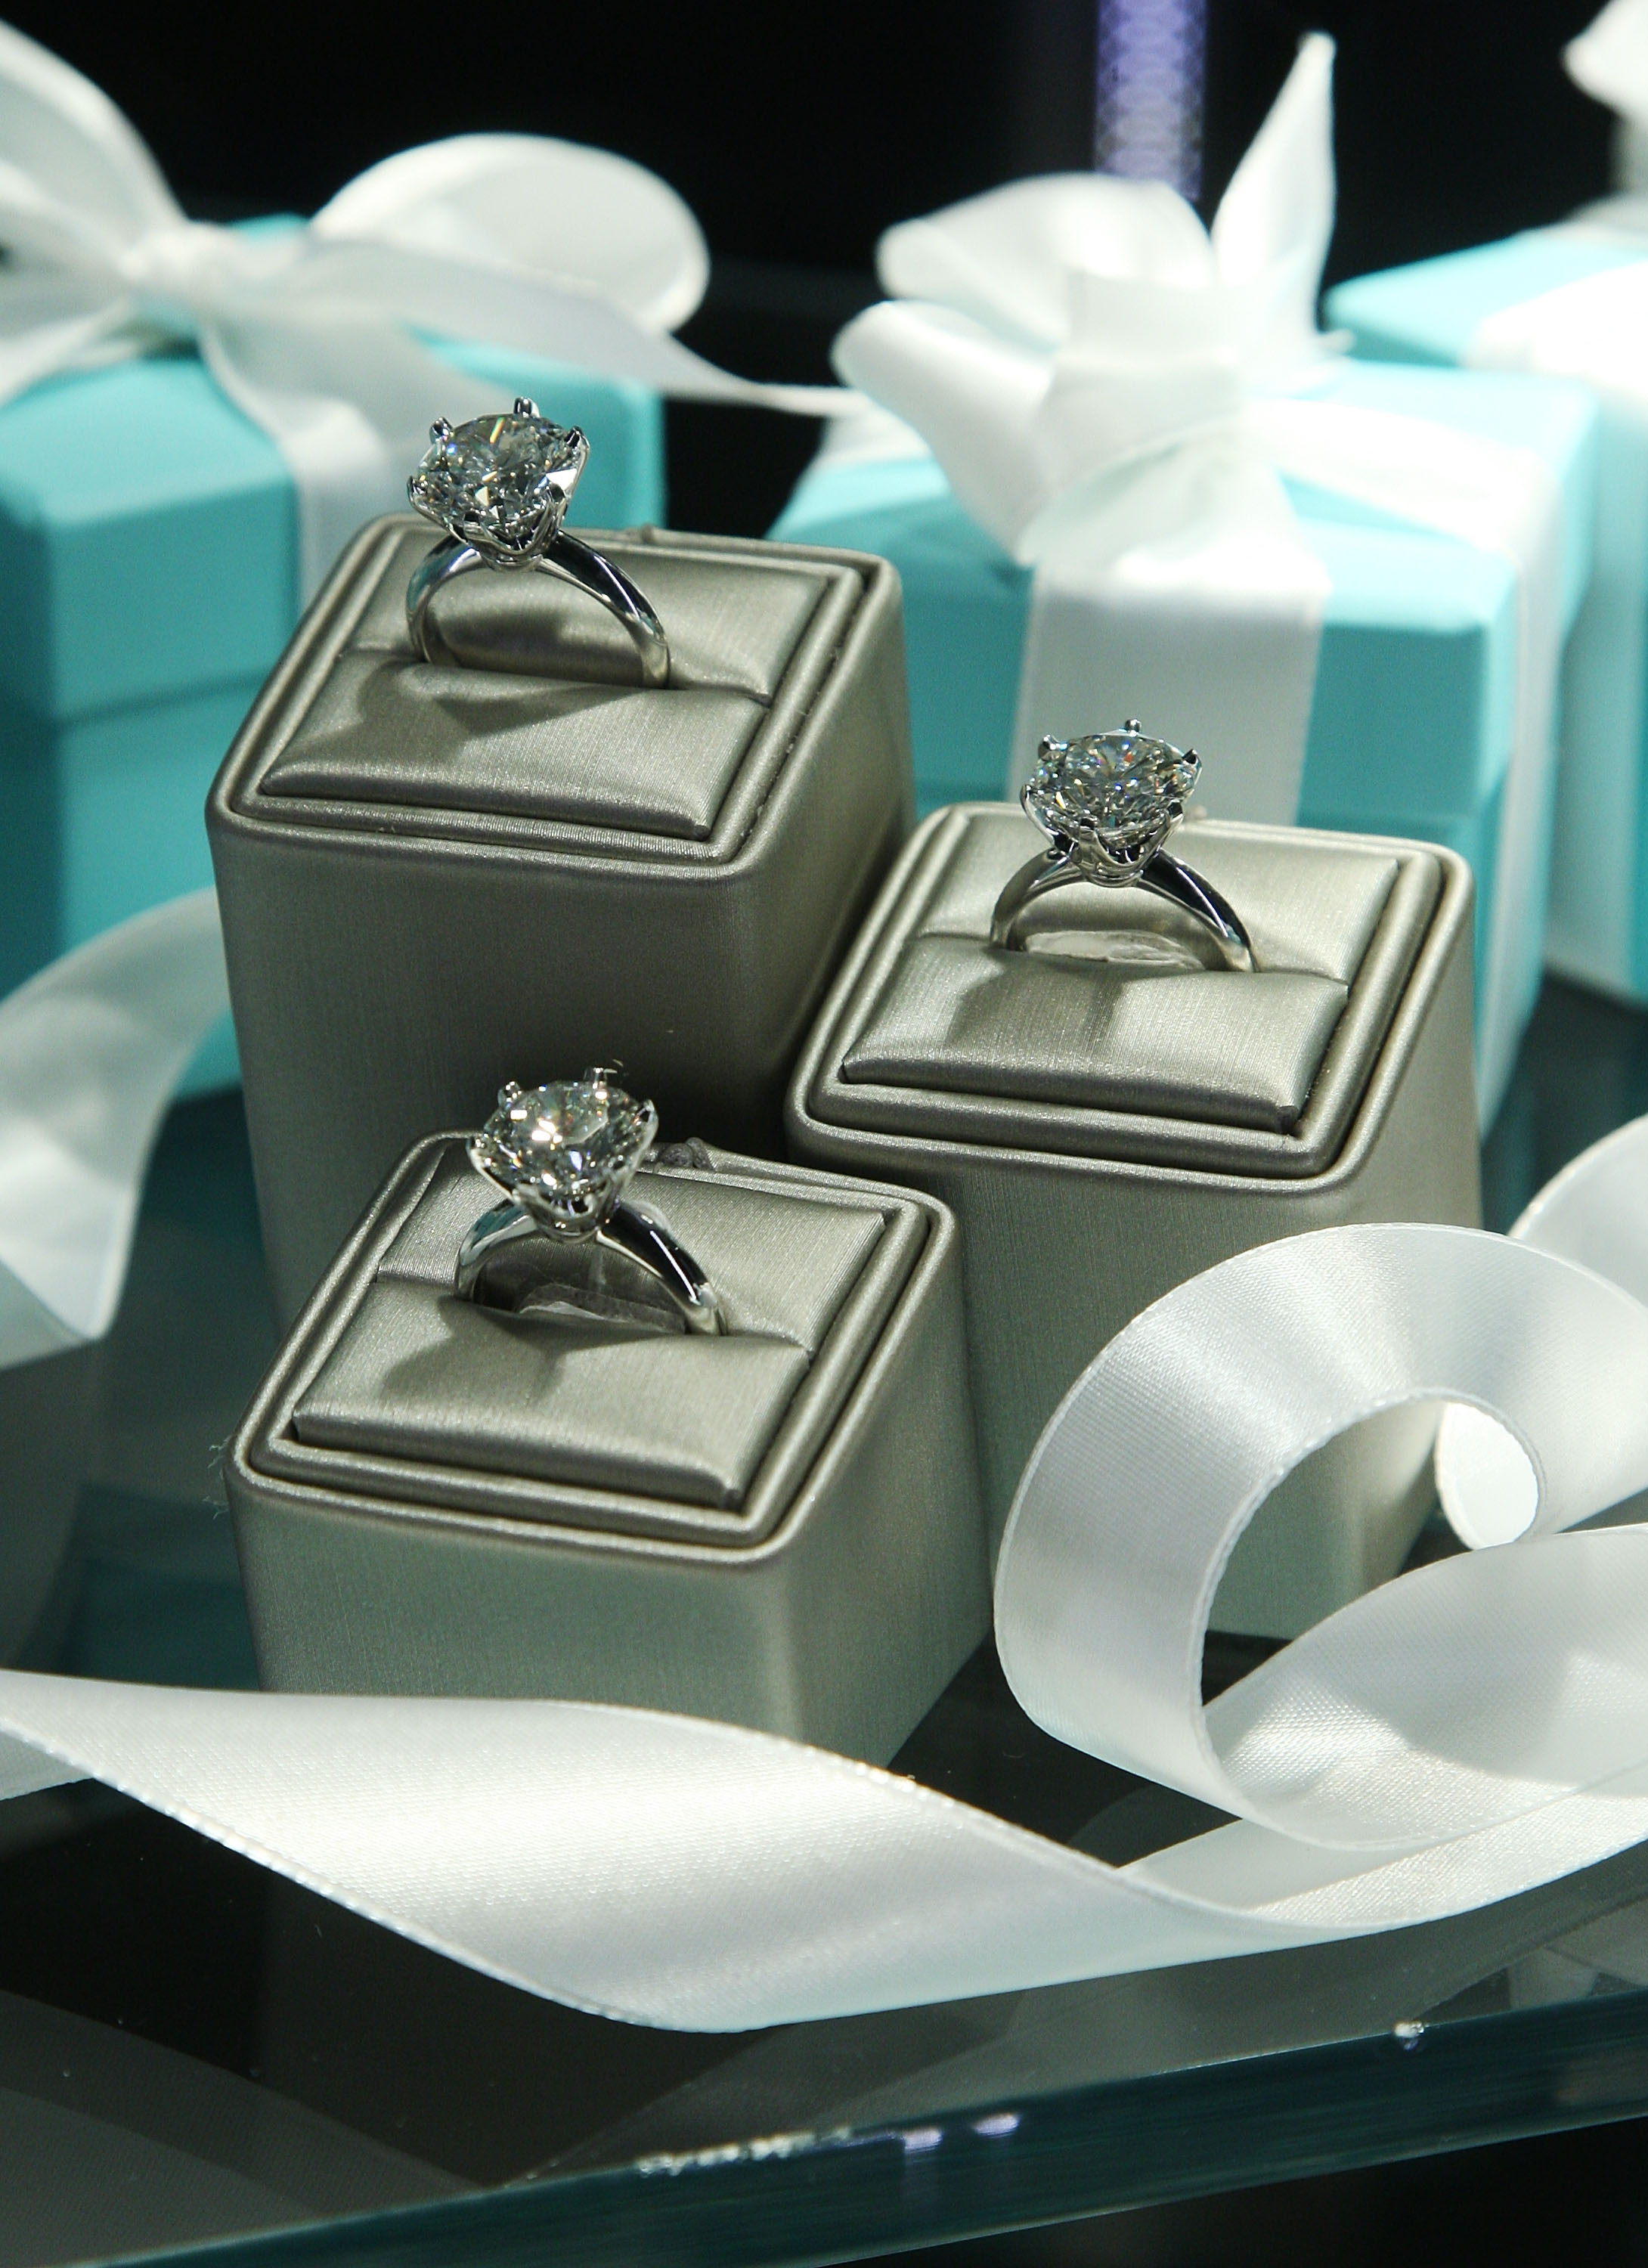 98d5366acc8c6 How to Spot Fake Tiffany and Co. Jewelry | LEAFtv